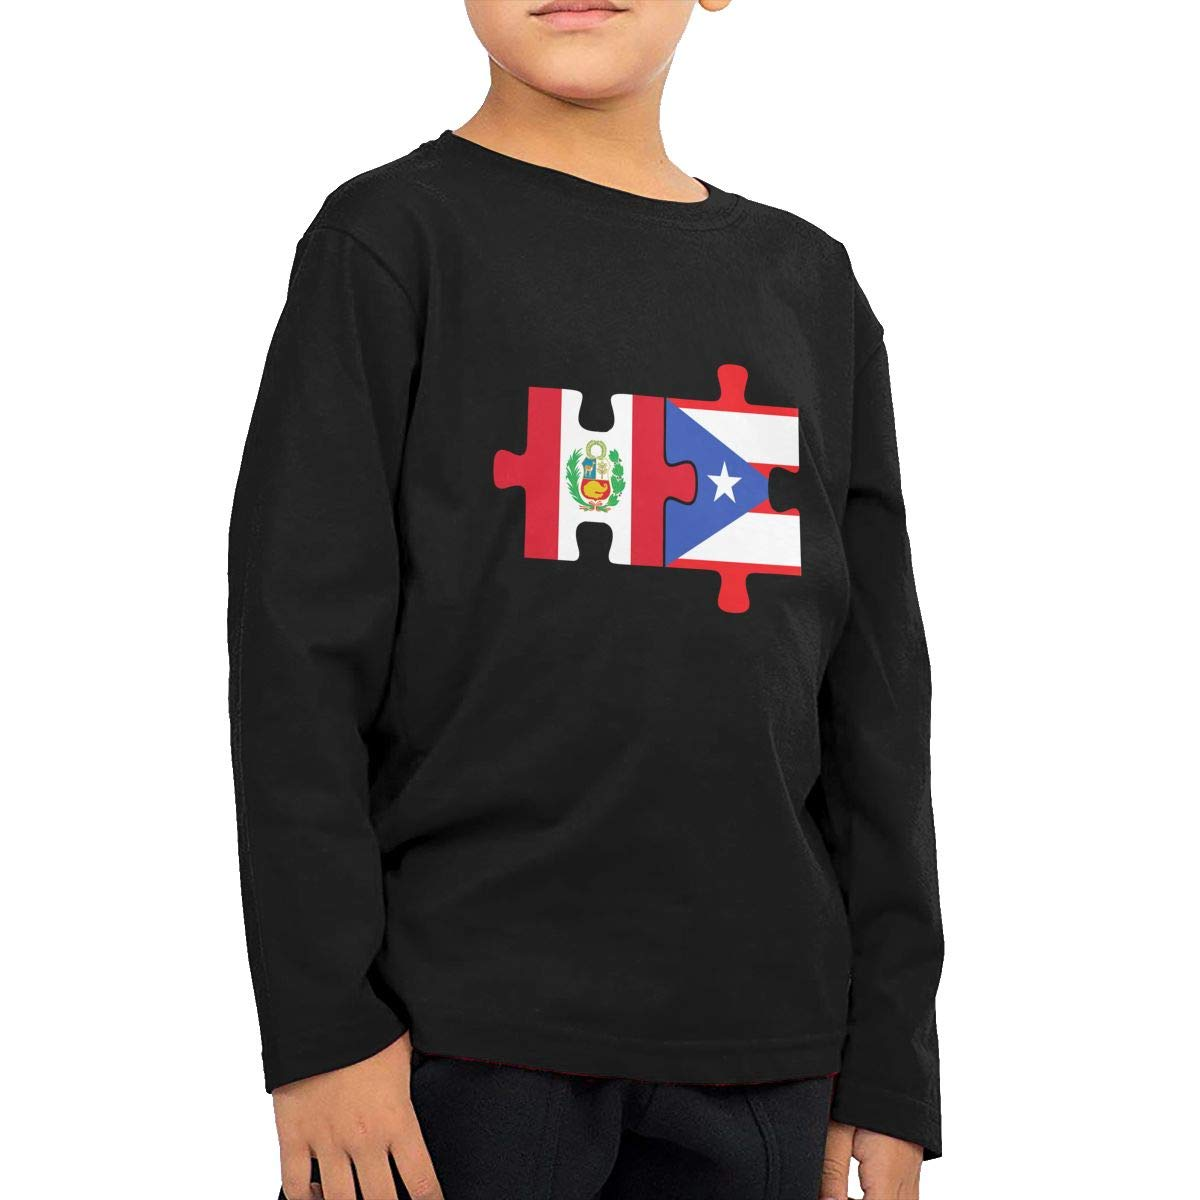 Newborn Childrens Peru Puerto Rico Flags Puzzle Printed Long Sleeve 100/% Cotton Infants T-Shirts